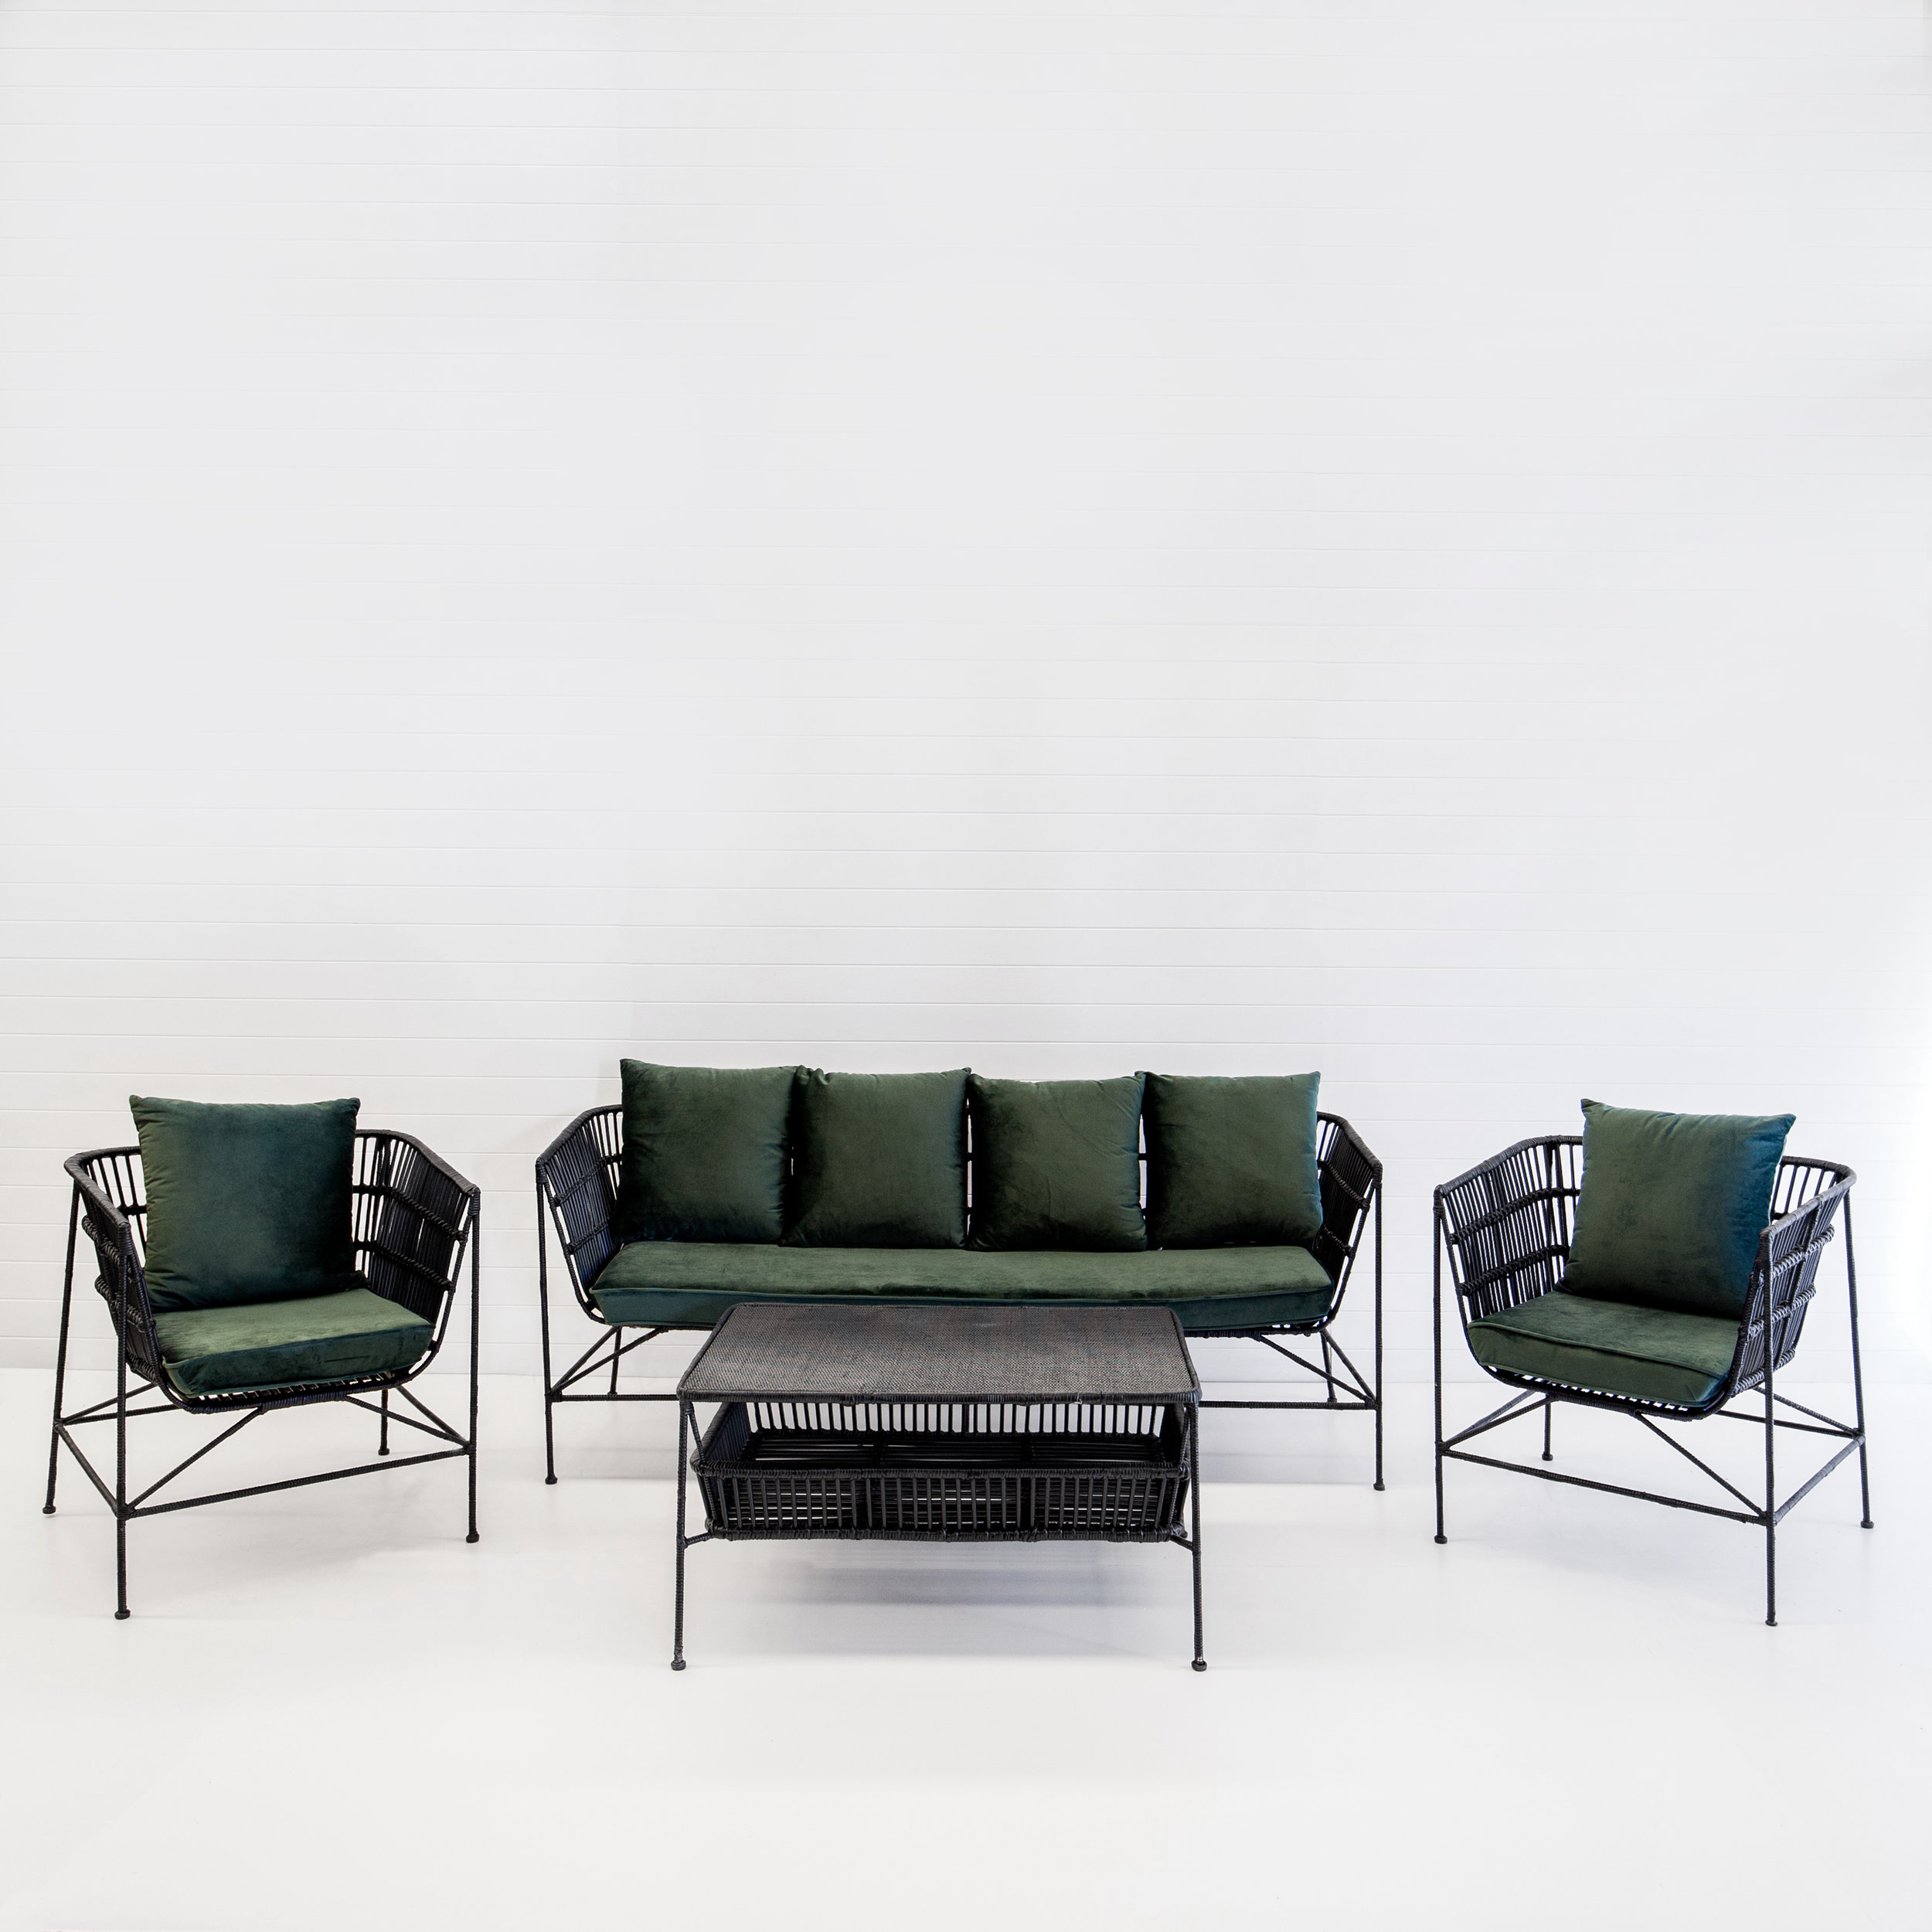 INDIE BLACK SOFA PACKAGE (WITH EMERALD VELVET CUSHIONS)